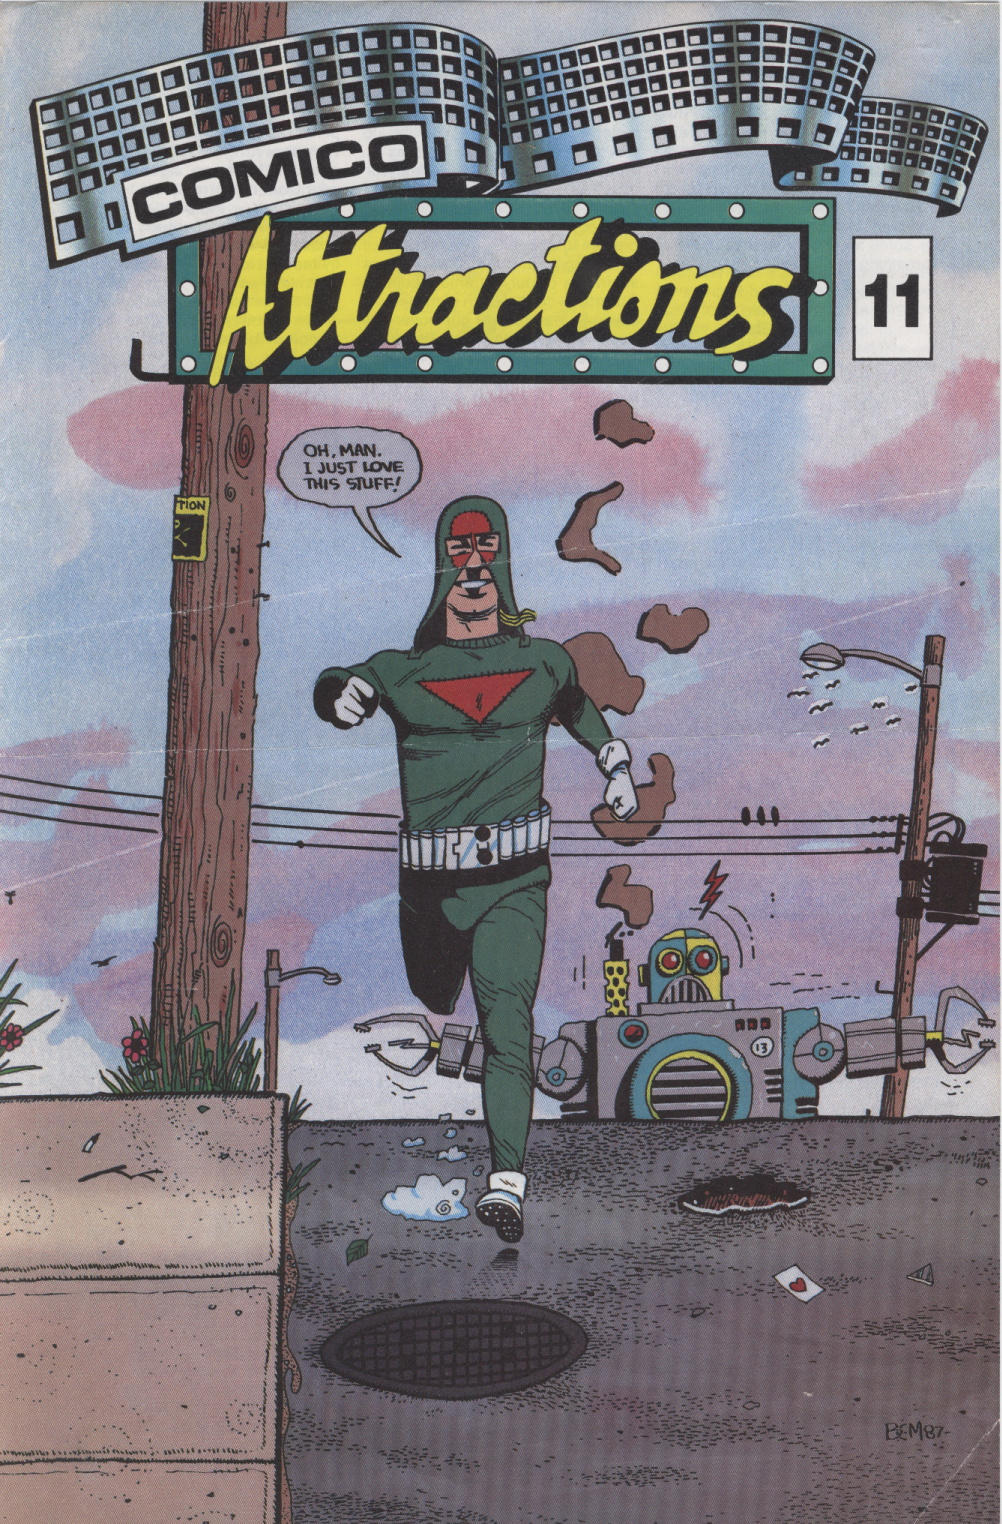 Time Capsule: Comico Attractions 11, 1988